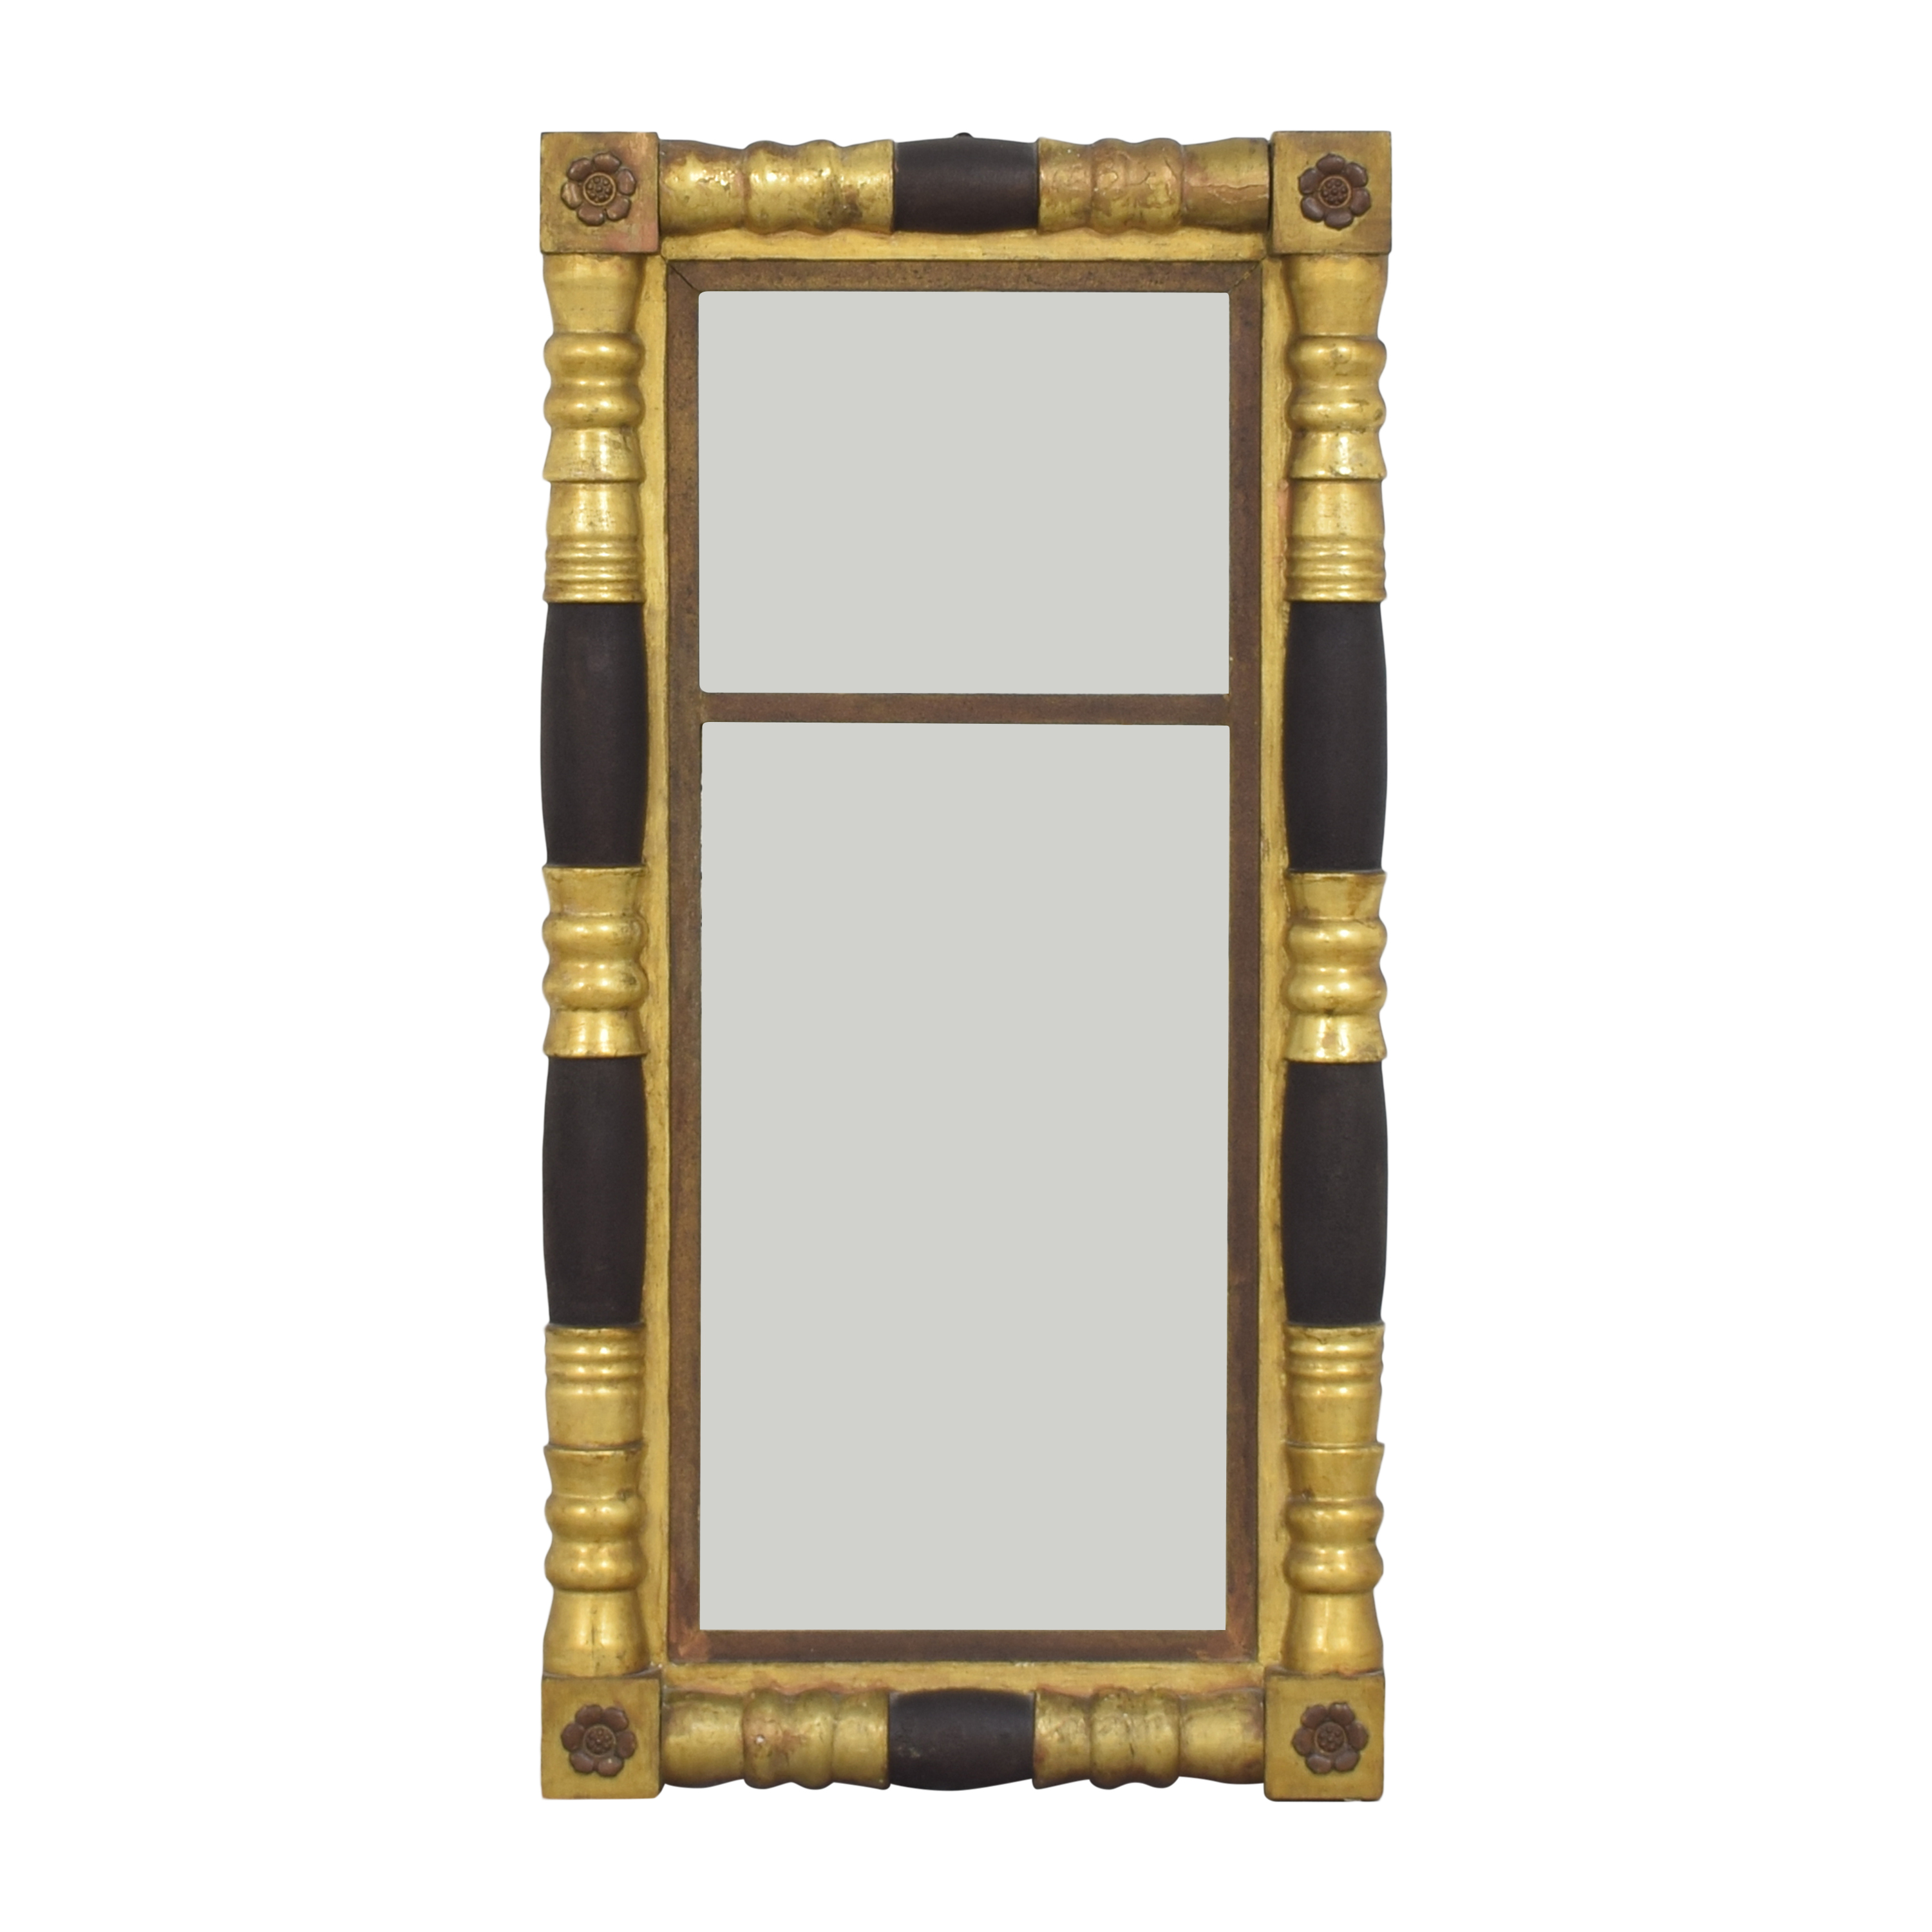 Vintage Colonial-Style Framed Mirror / Decor